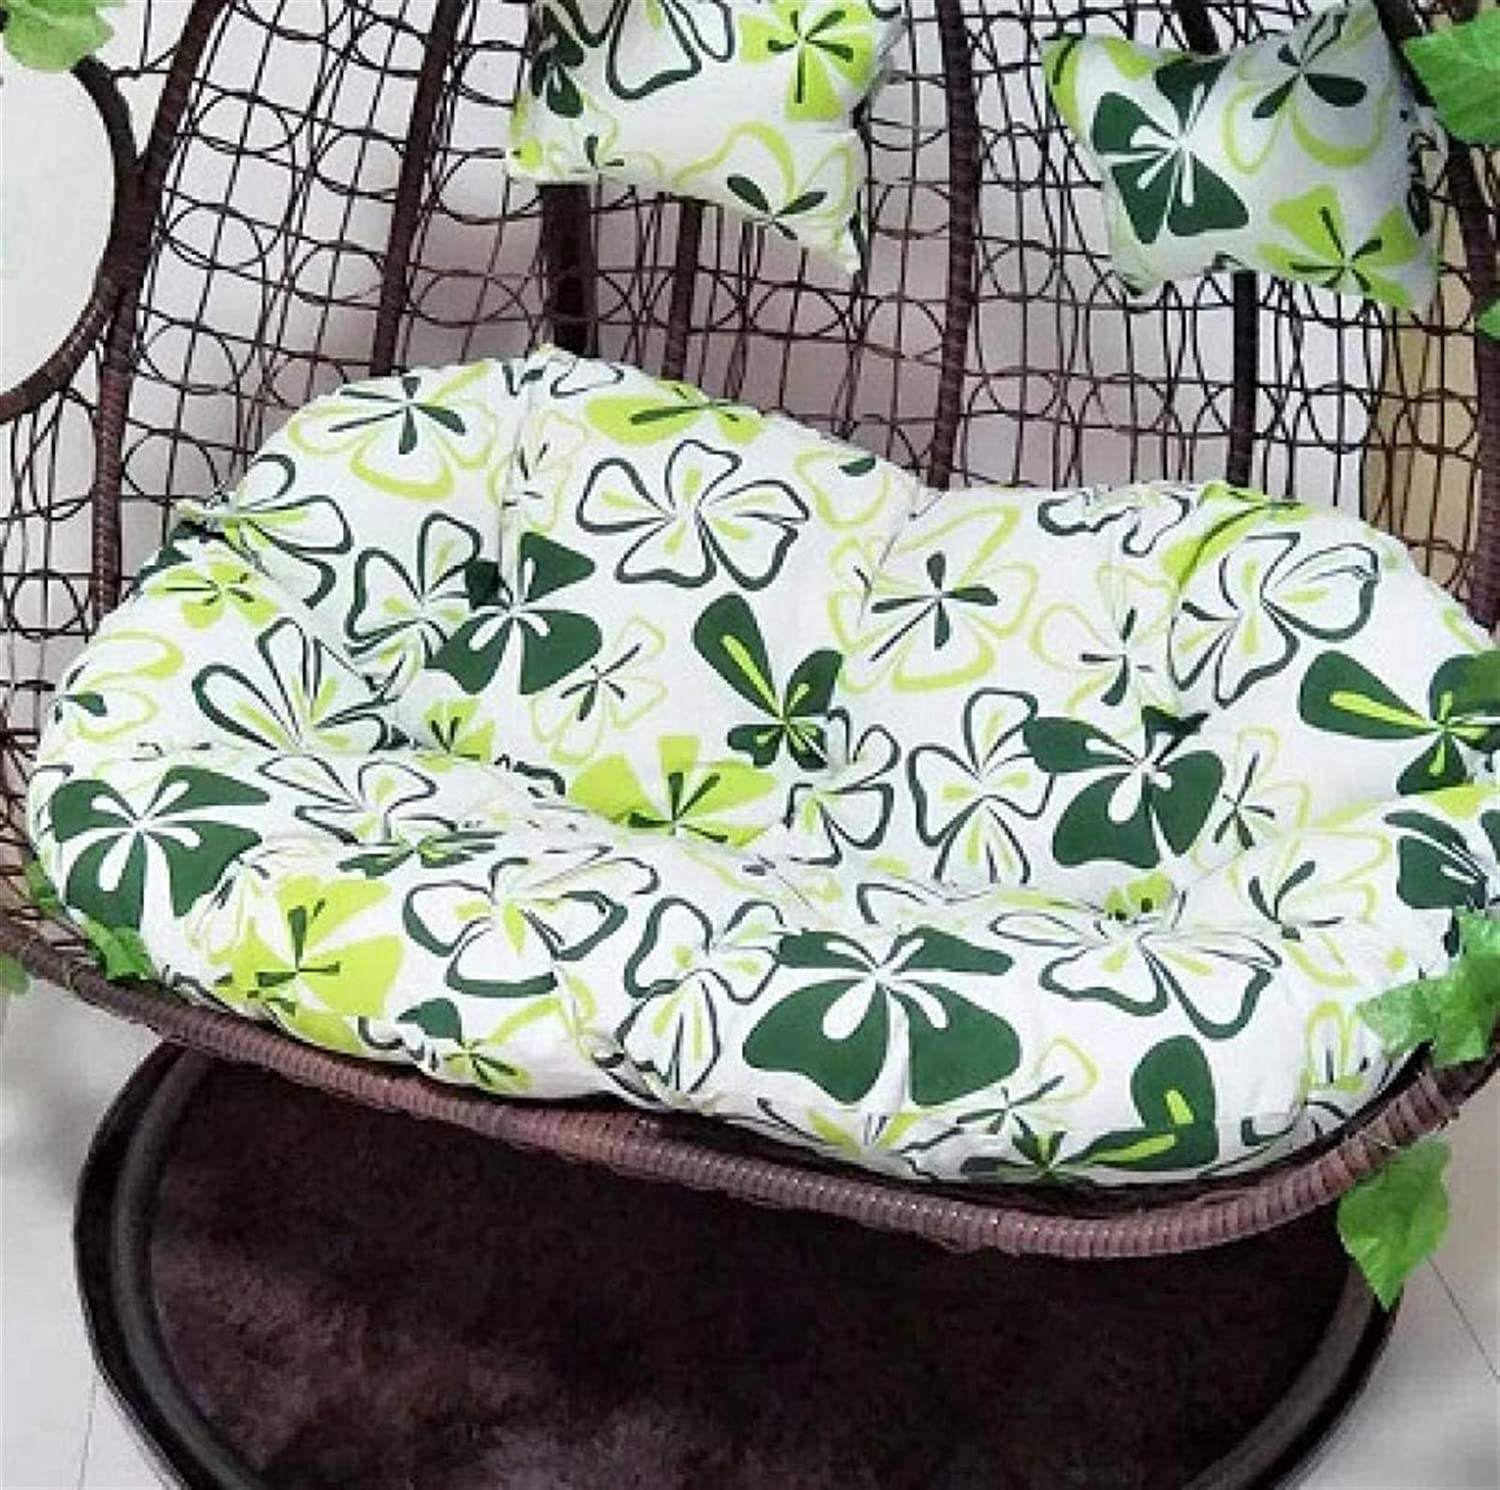 Garden cushion Chair Cushions Very popular Seat Crib Cushion Double Inventory cleanup selling sale